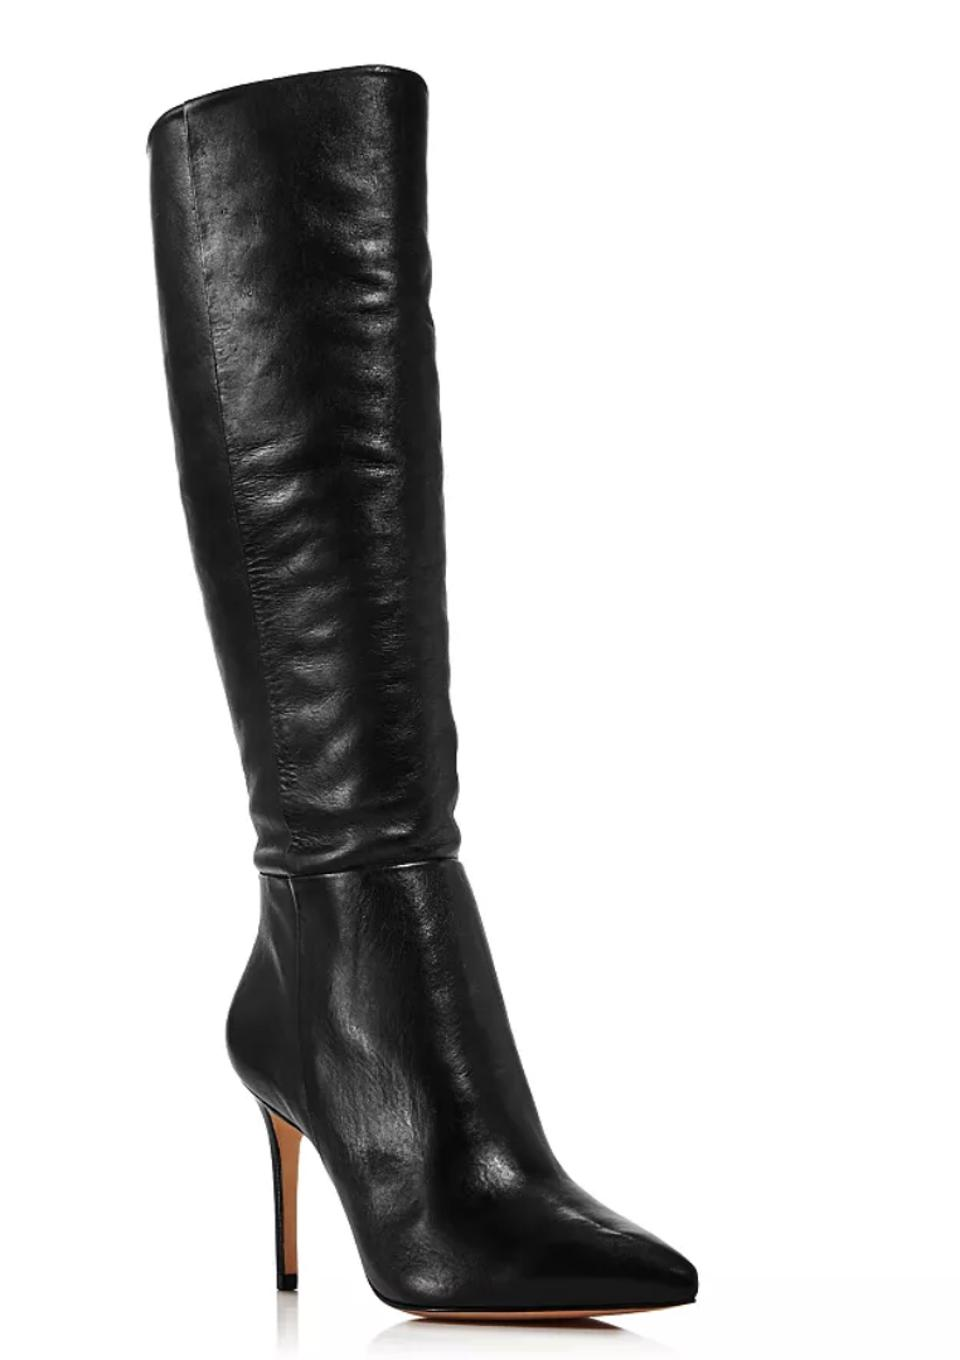 Schutz Women's Magalli Pointed Toe Tall Leather Boots